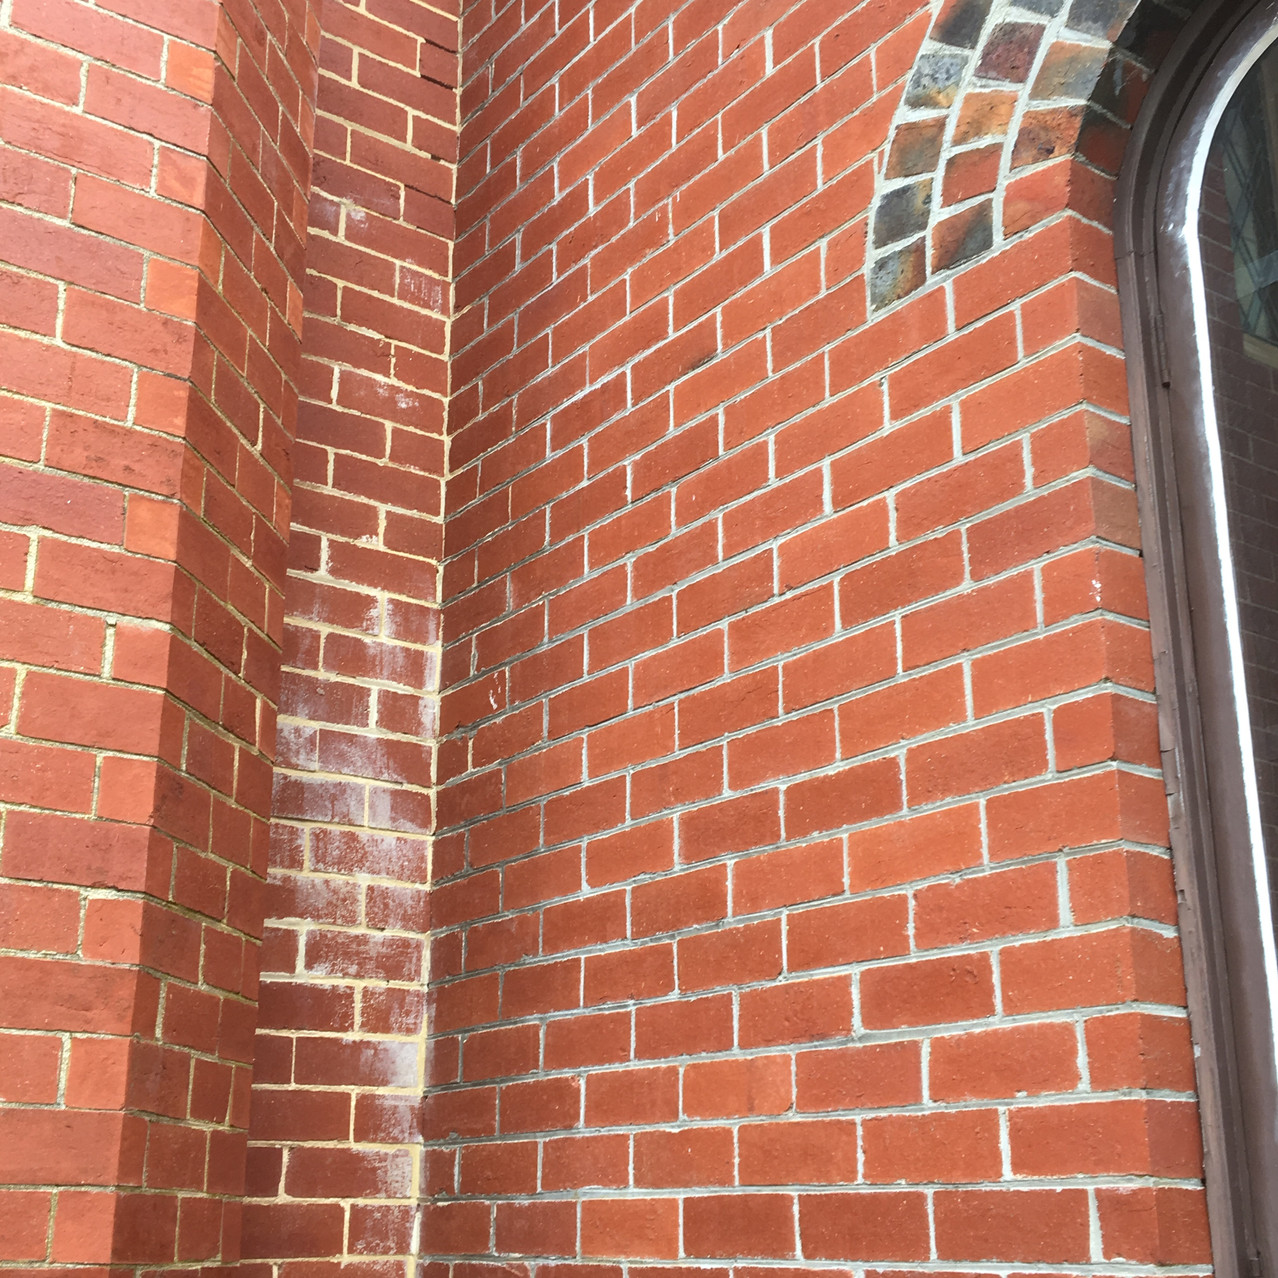 Conspar work to rectify subsidence at a heritage-listed monastery in Dalkeith.